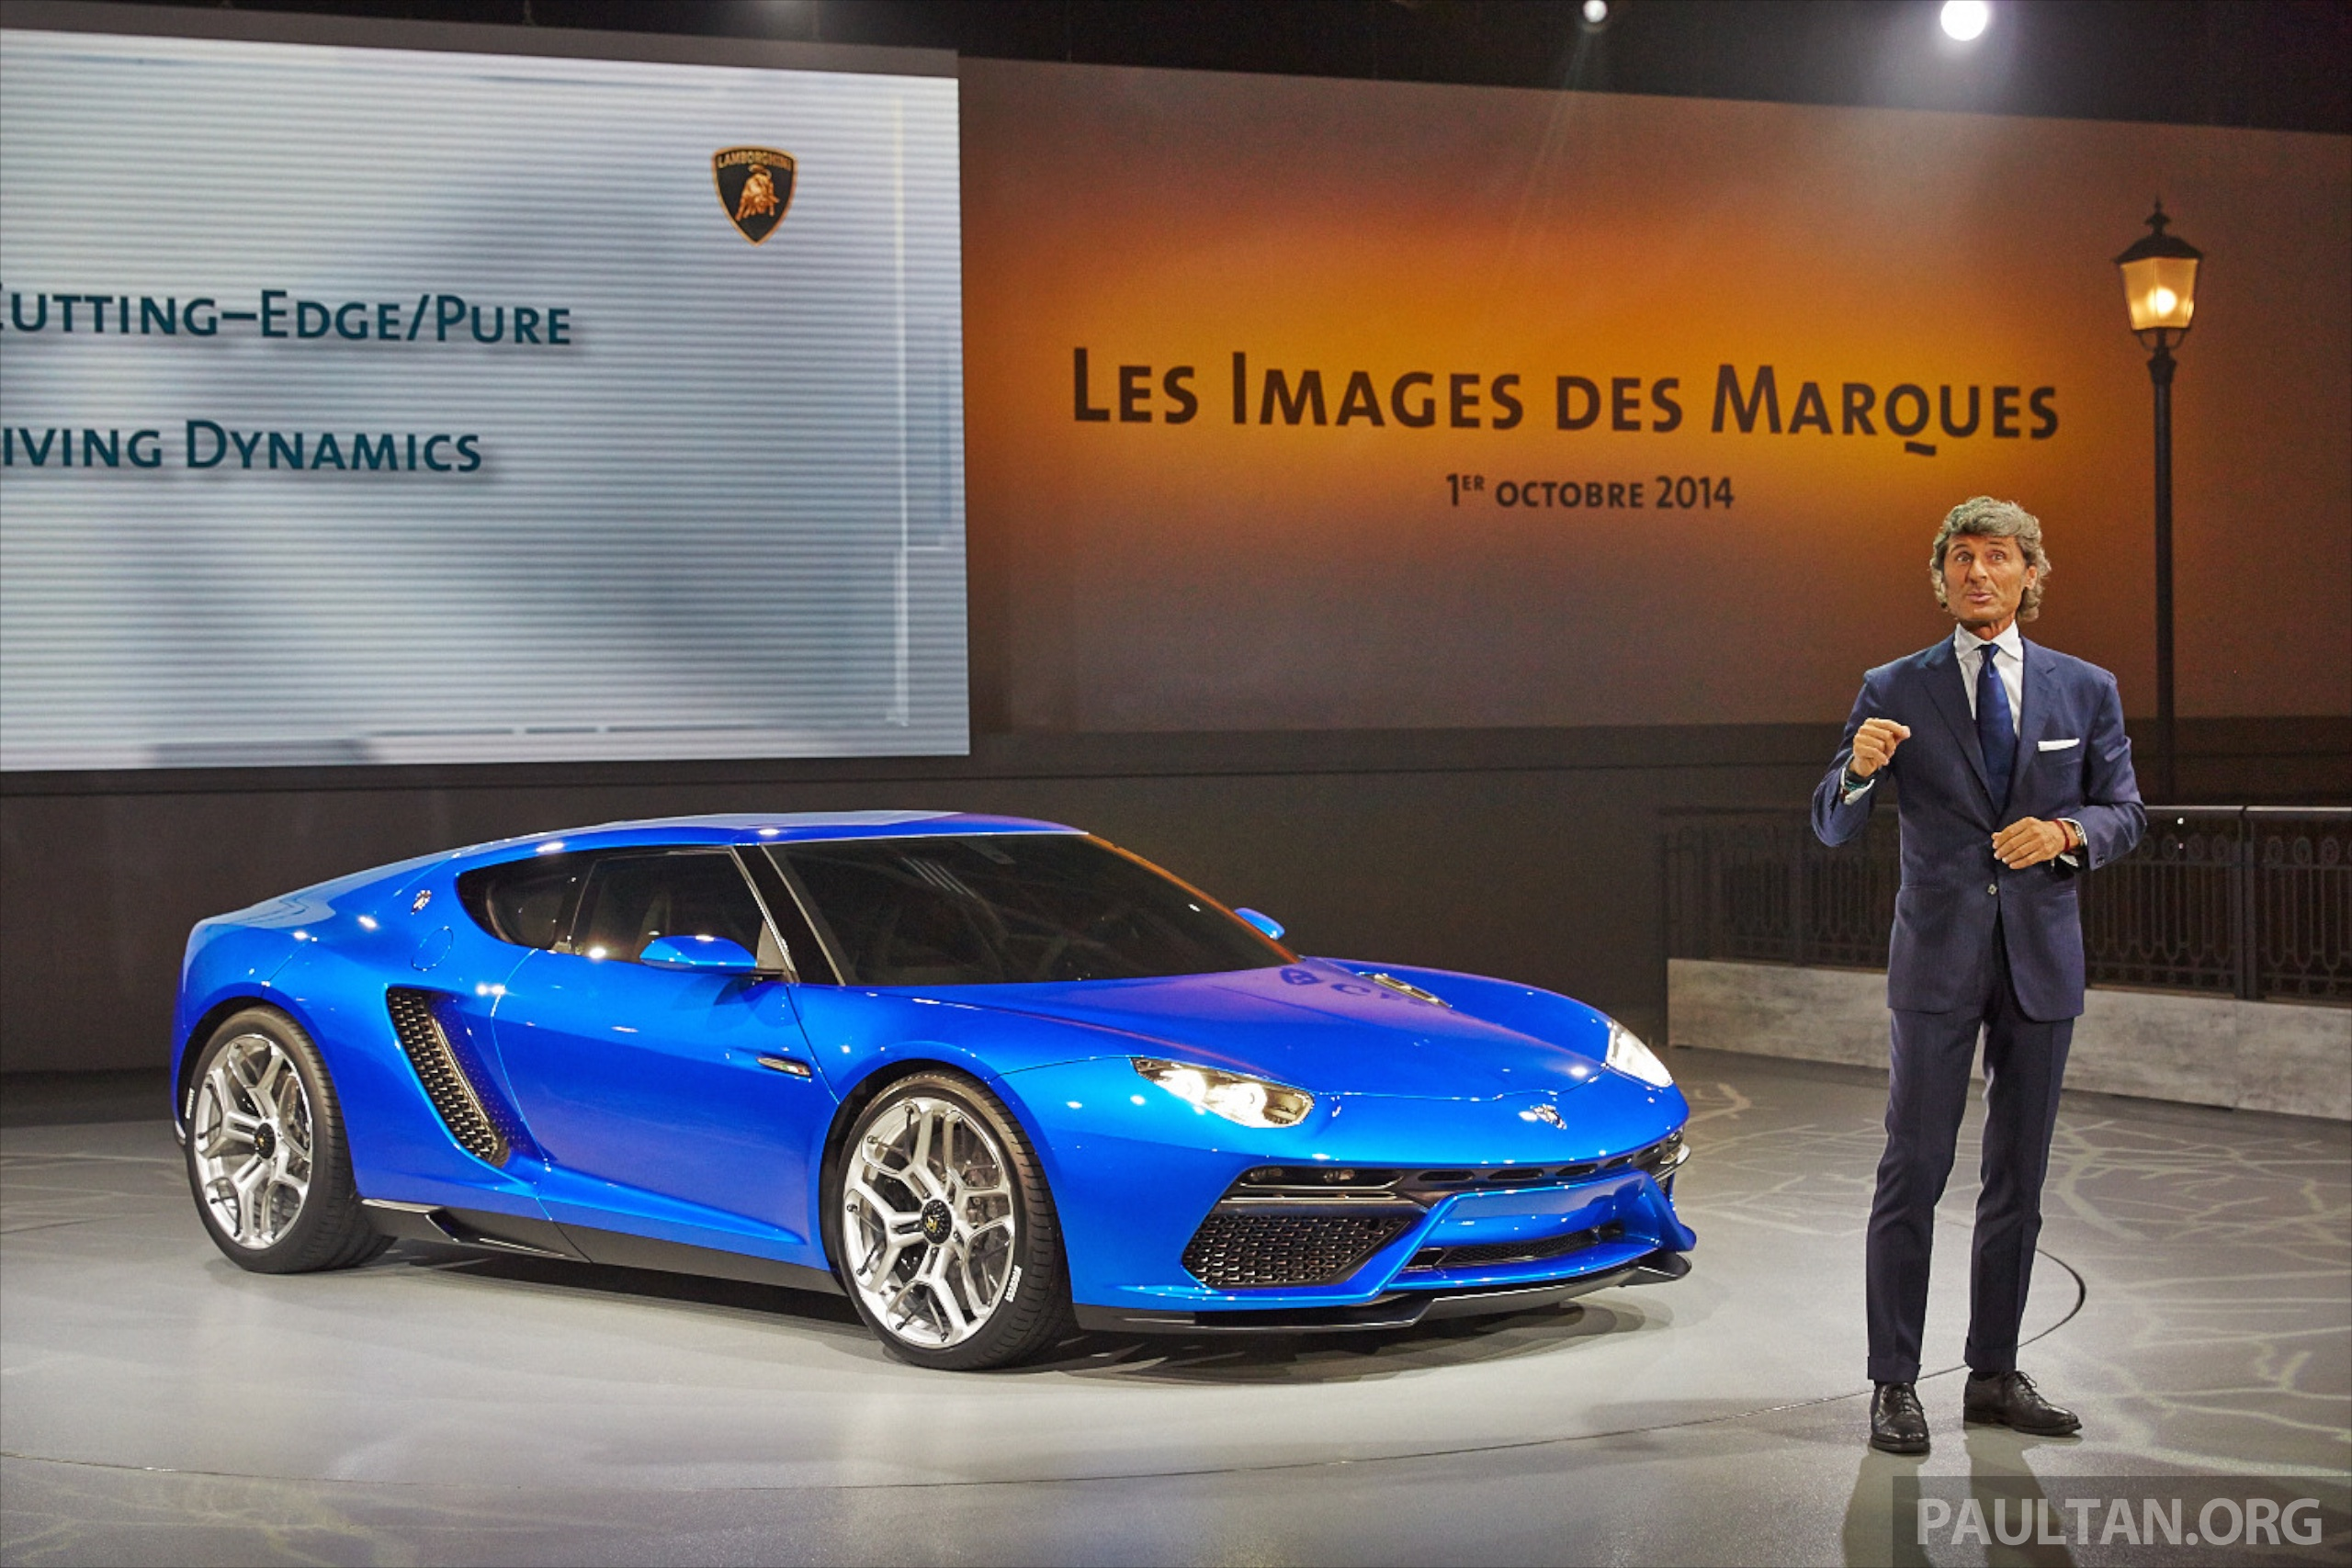 2010 Lamborghini Asterion LPI910 4 Concept photo - 1